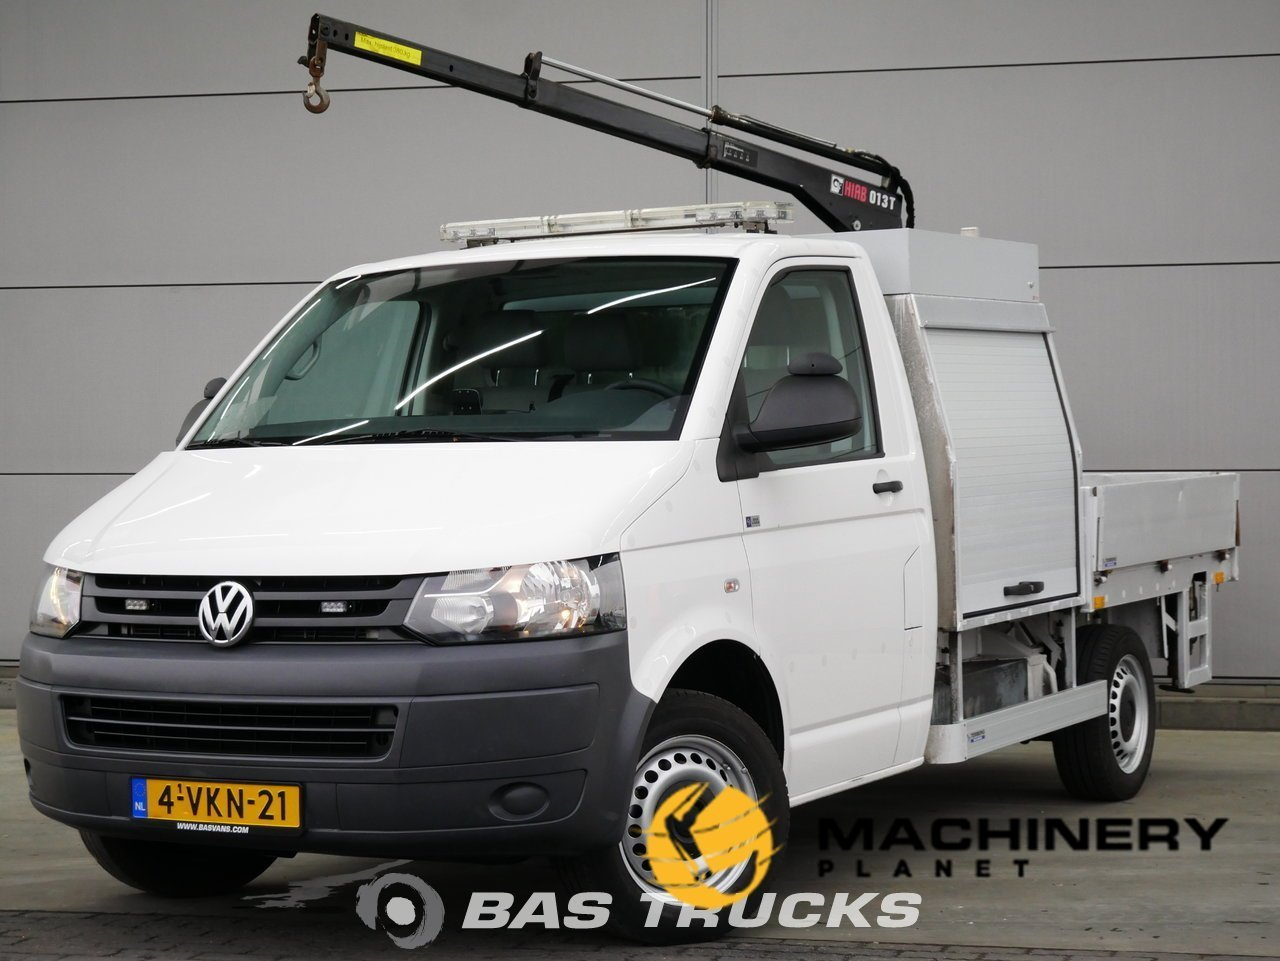 Used-Light-commercial-vehicle-Volkswagen-Transporter-2010_144474_1-1554202585122_5ca33fd91dc32-1.jpg